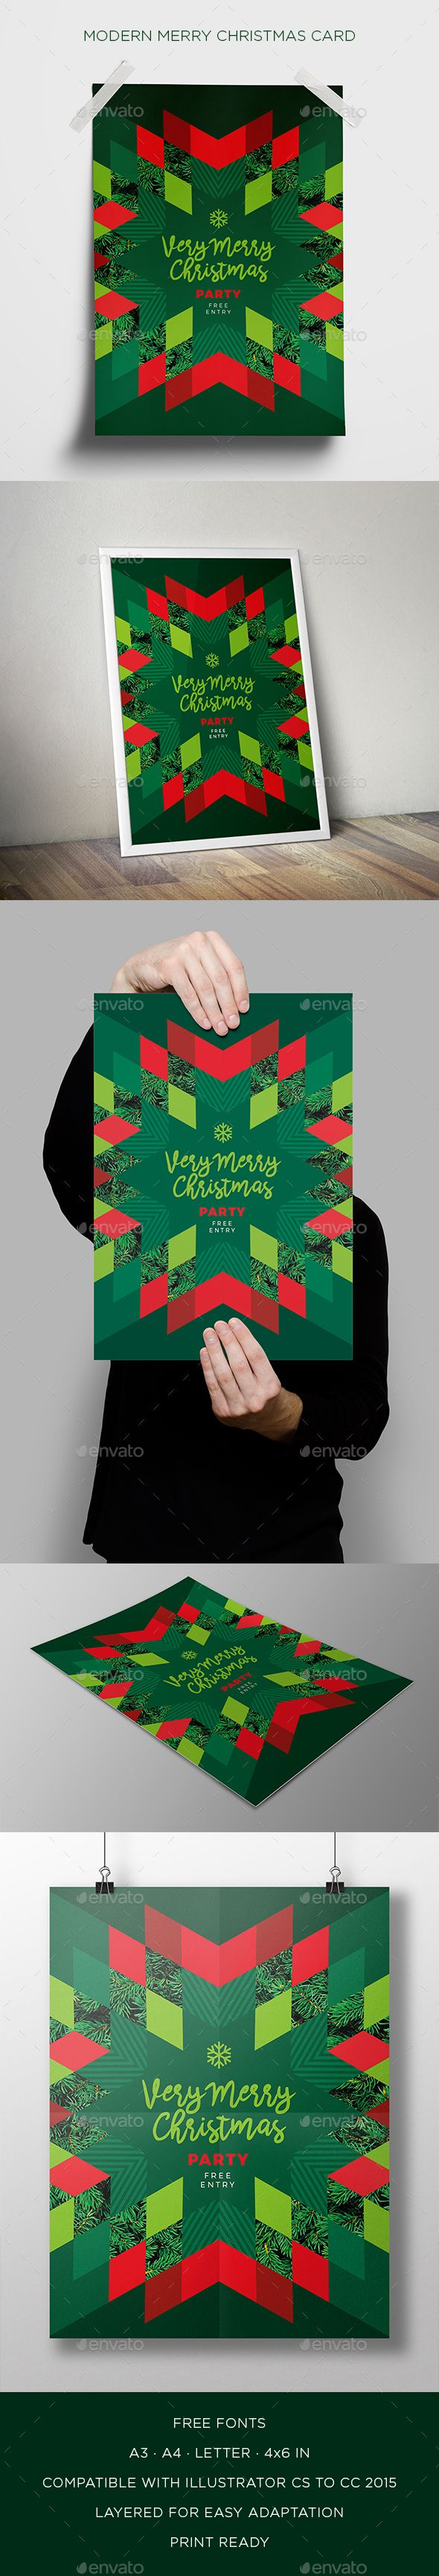 Modern Merry Christmas Card - Cards & Invites Print Templates Download here: https://graphicriver.net/item/modern-merry-christmas-card/19002777?ref=alena994